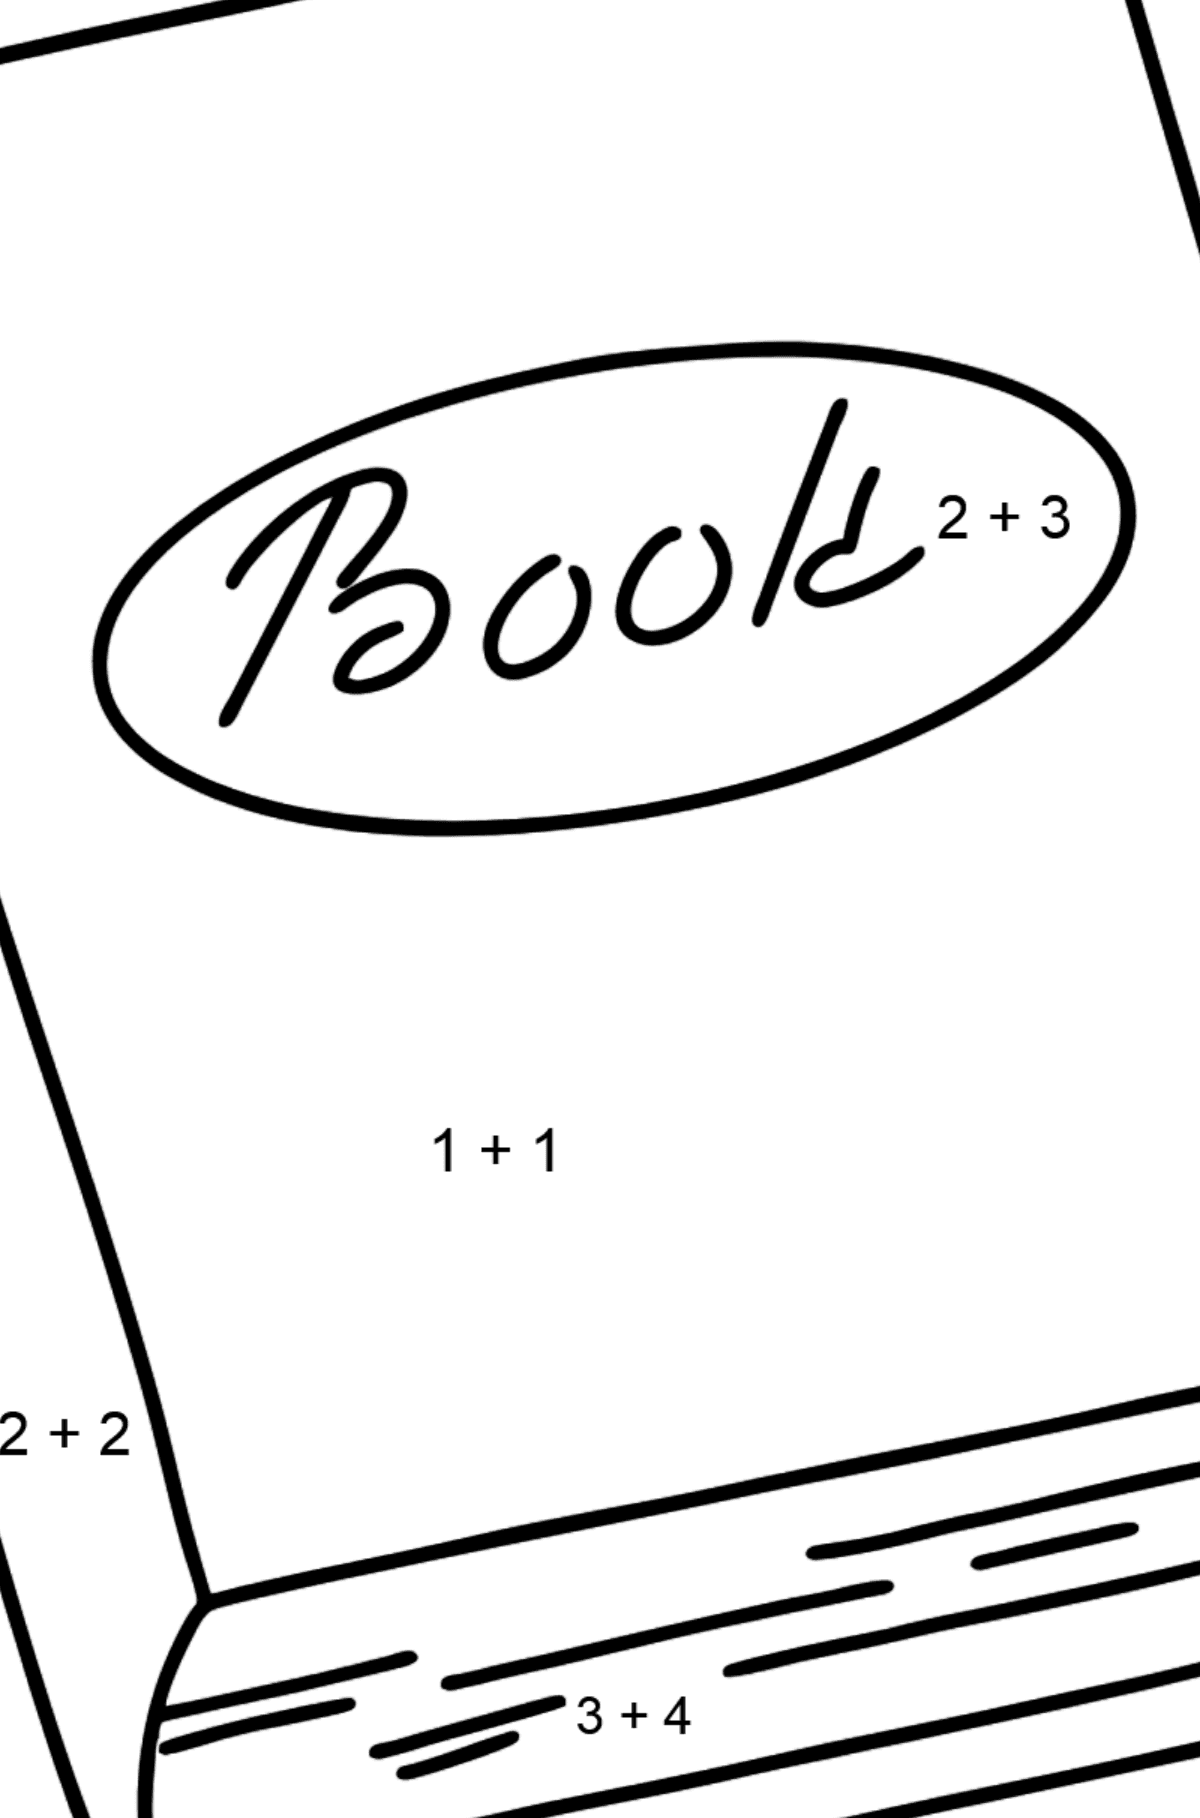 Book coloring page - Math Coloring - Addition for Kids